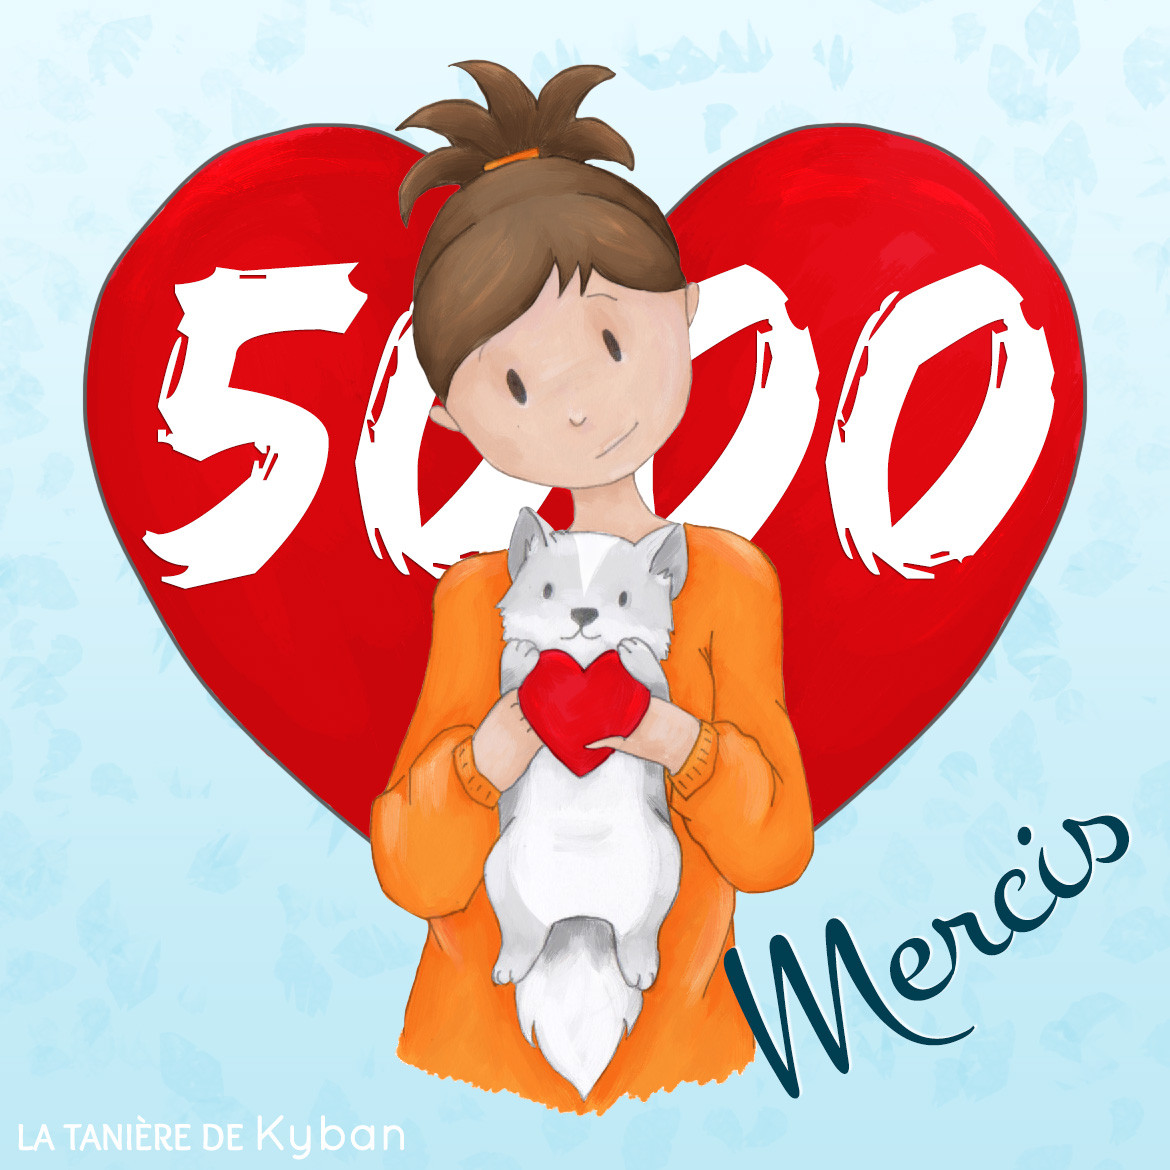 5000 likes sur Facebook